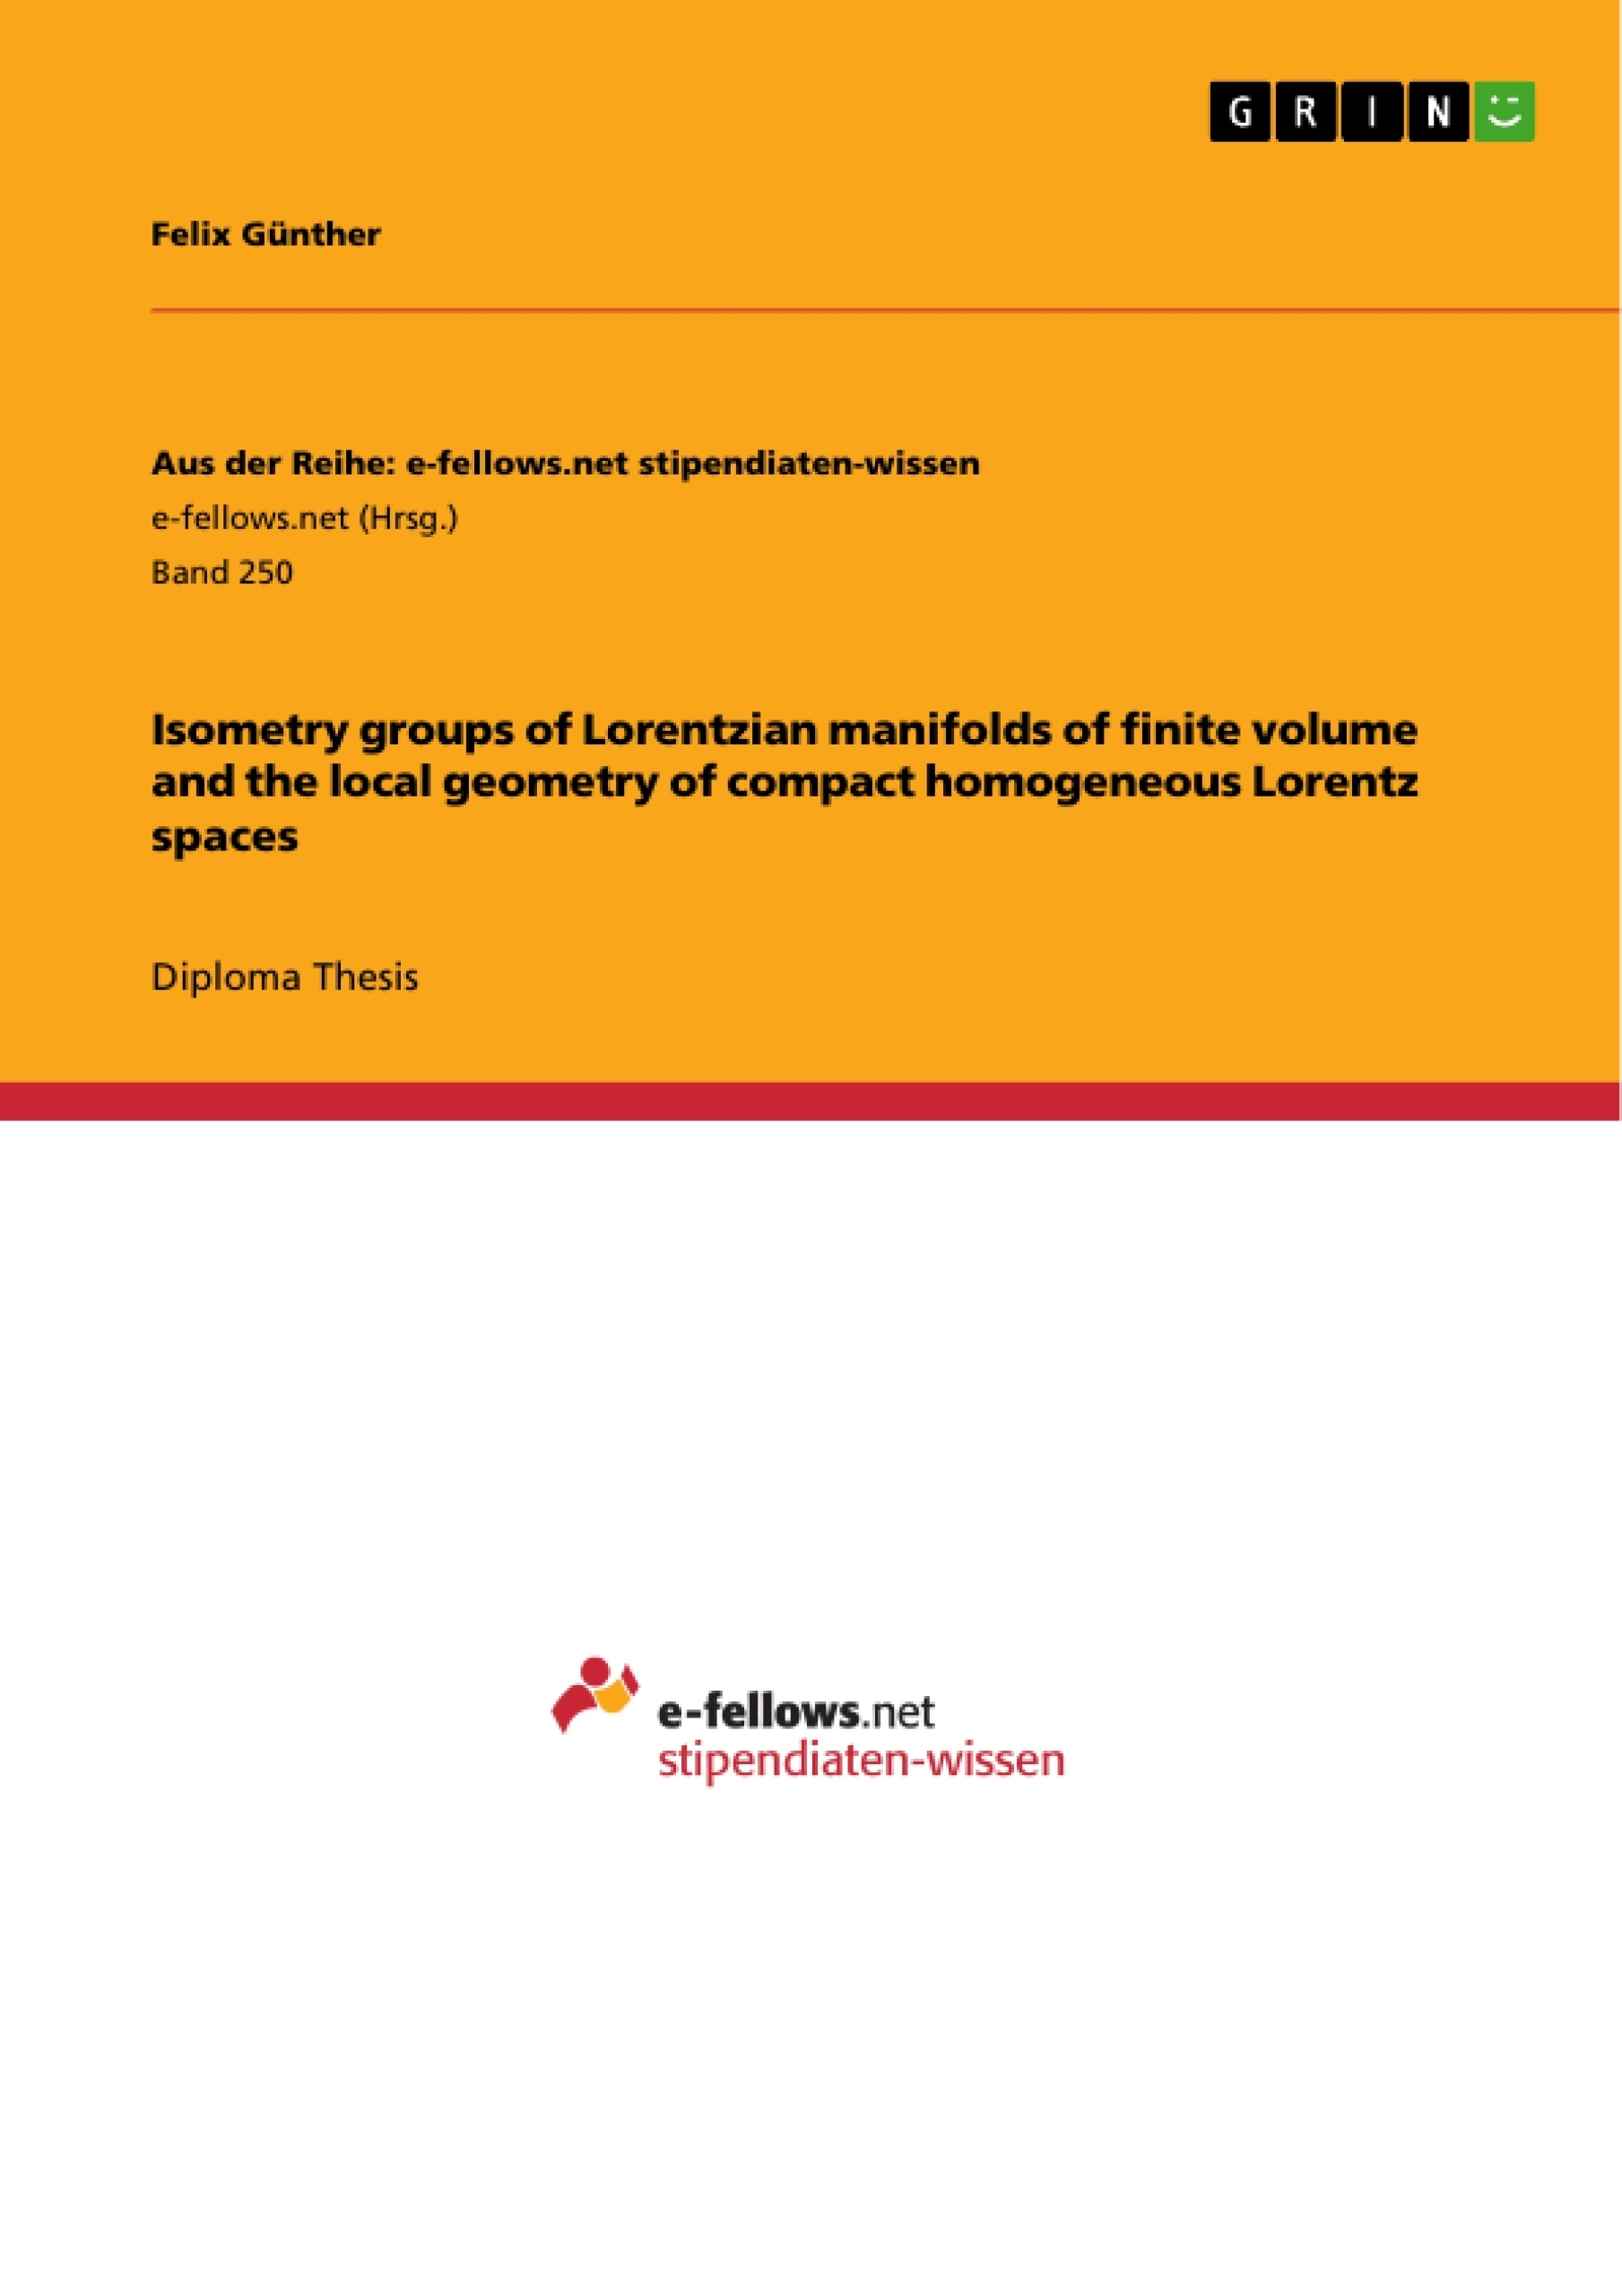 Title: Isometry groups of Lorentzian manifolds of finite volume and the local geometry of compact homogeneous Lorentz spaces